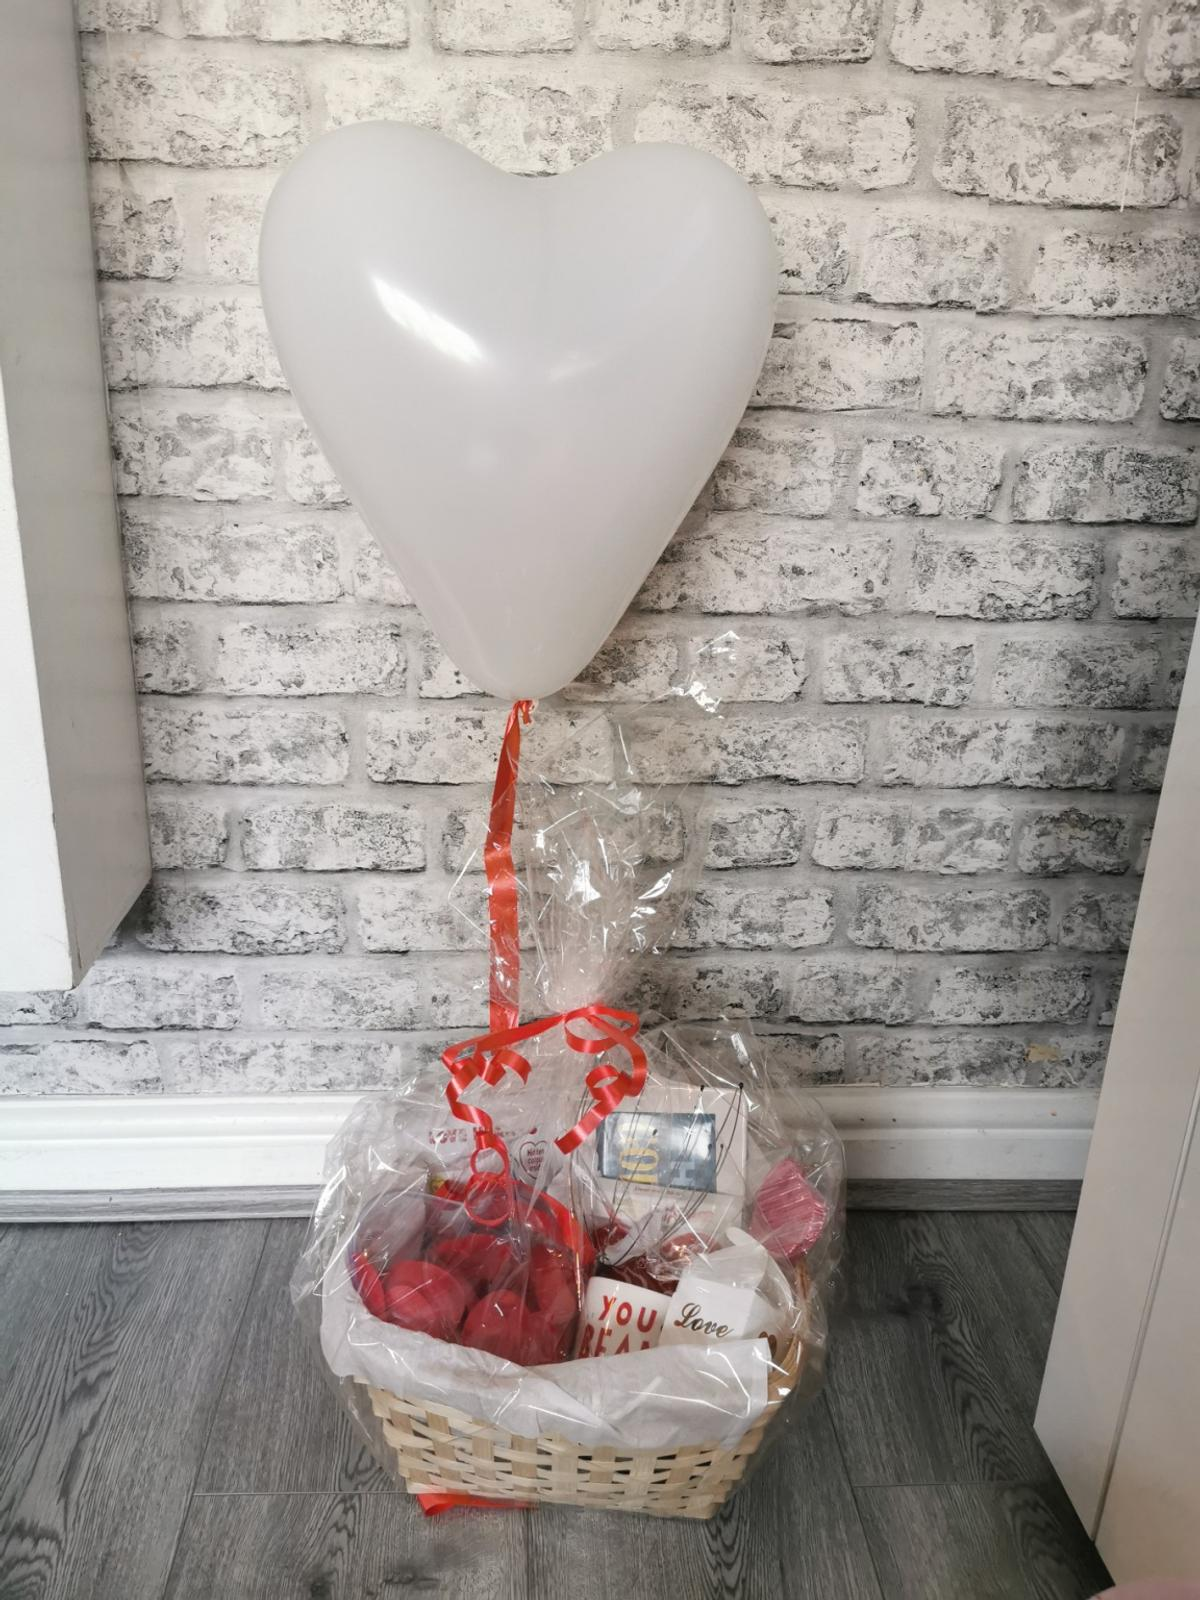 Available to order  Can choose wither red or white balloons  Contains Mug Chocolates Heart lolly Hey gorgeous dresser plate Heart of rose petals Massager Bath bomb Heart bubble keepsake Heart Card holder Heart hand warmer  Personalised tag added to each one with your own stamped messages